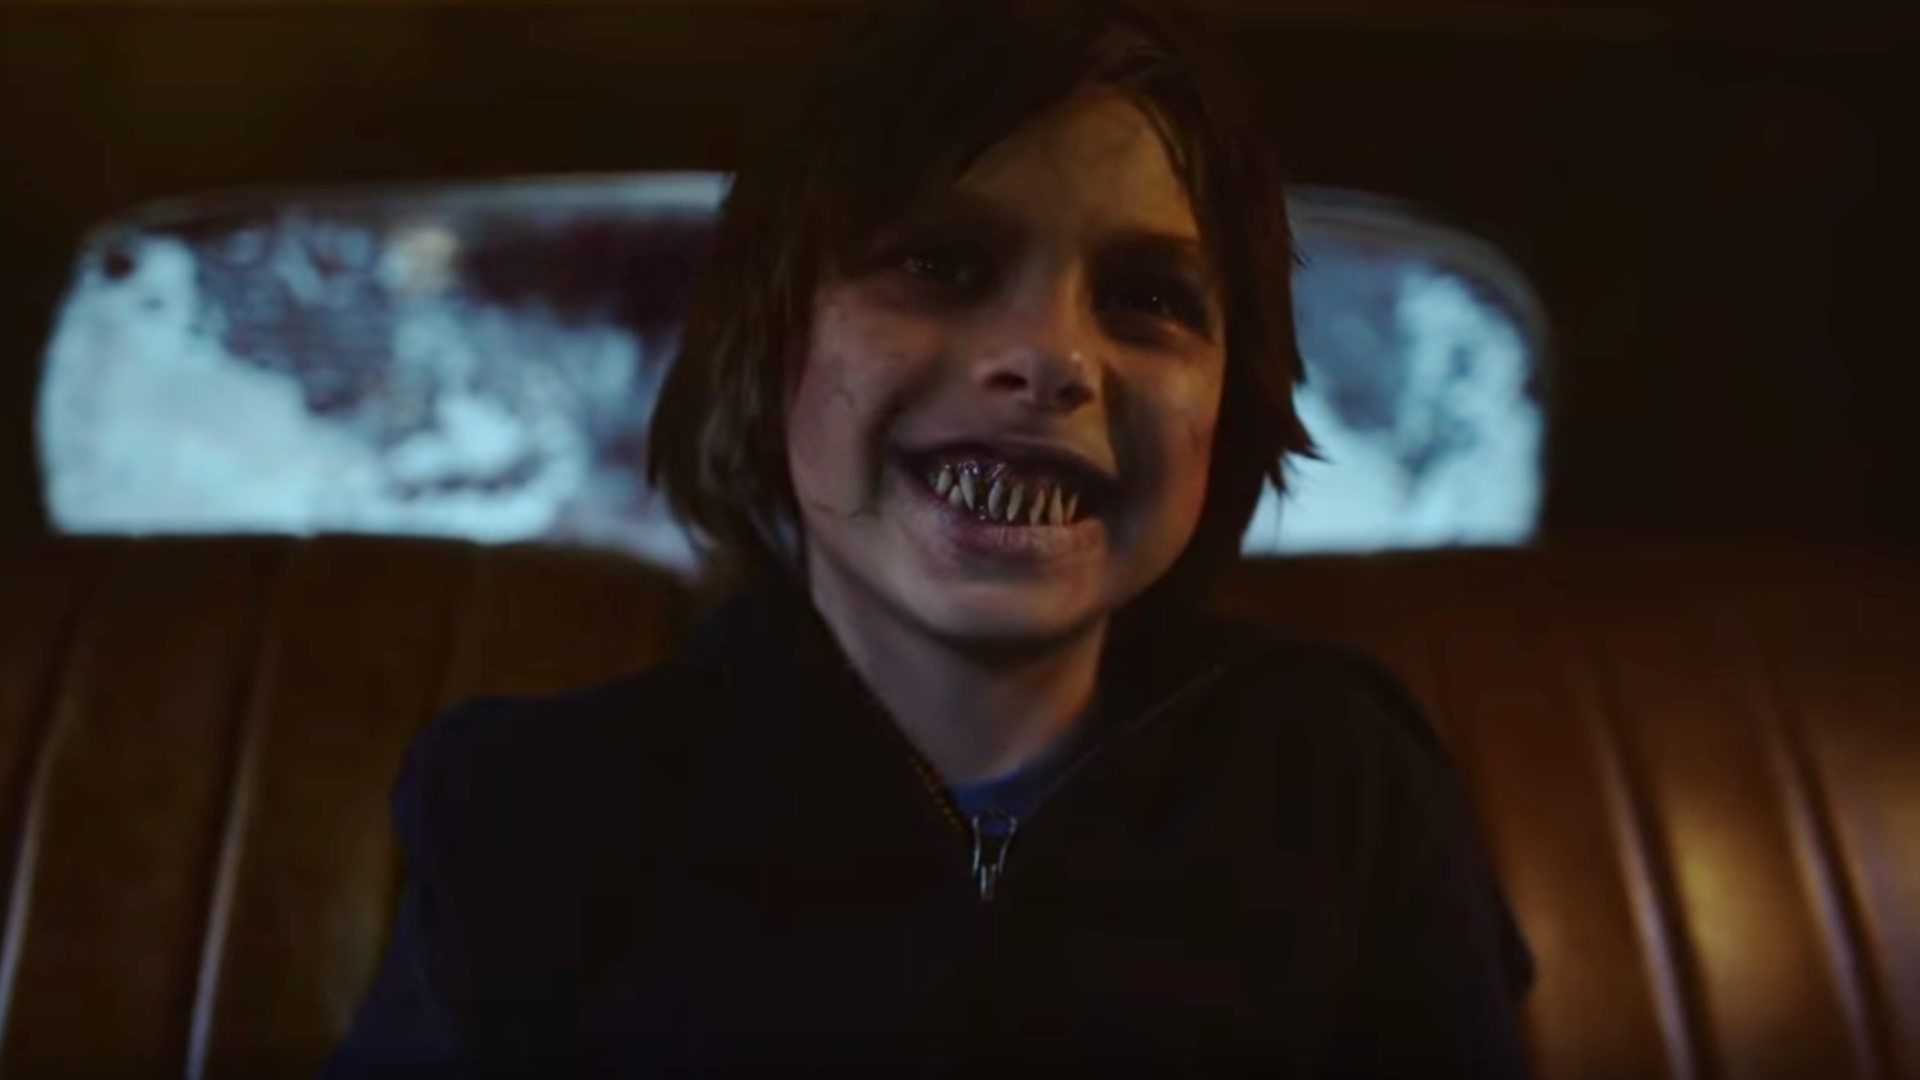 [News] NOS4A2 is Coming to Shudder!